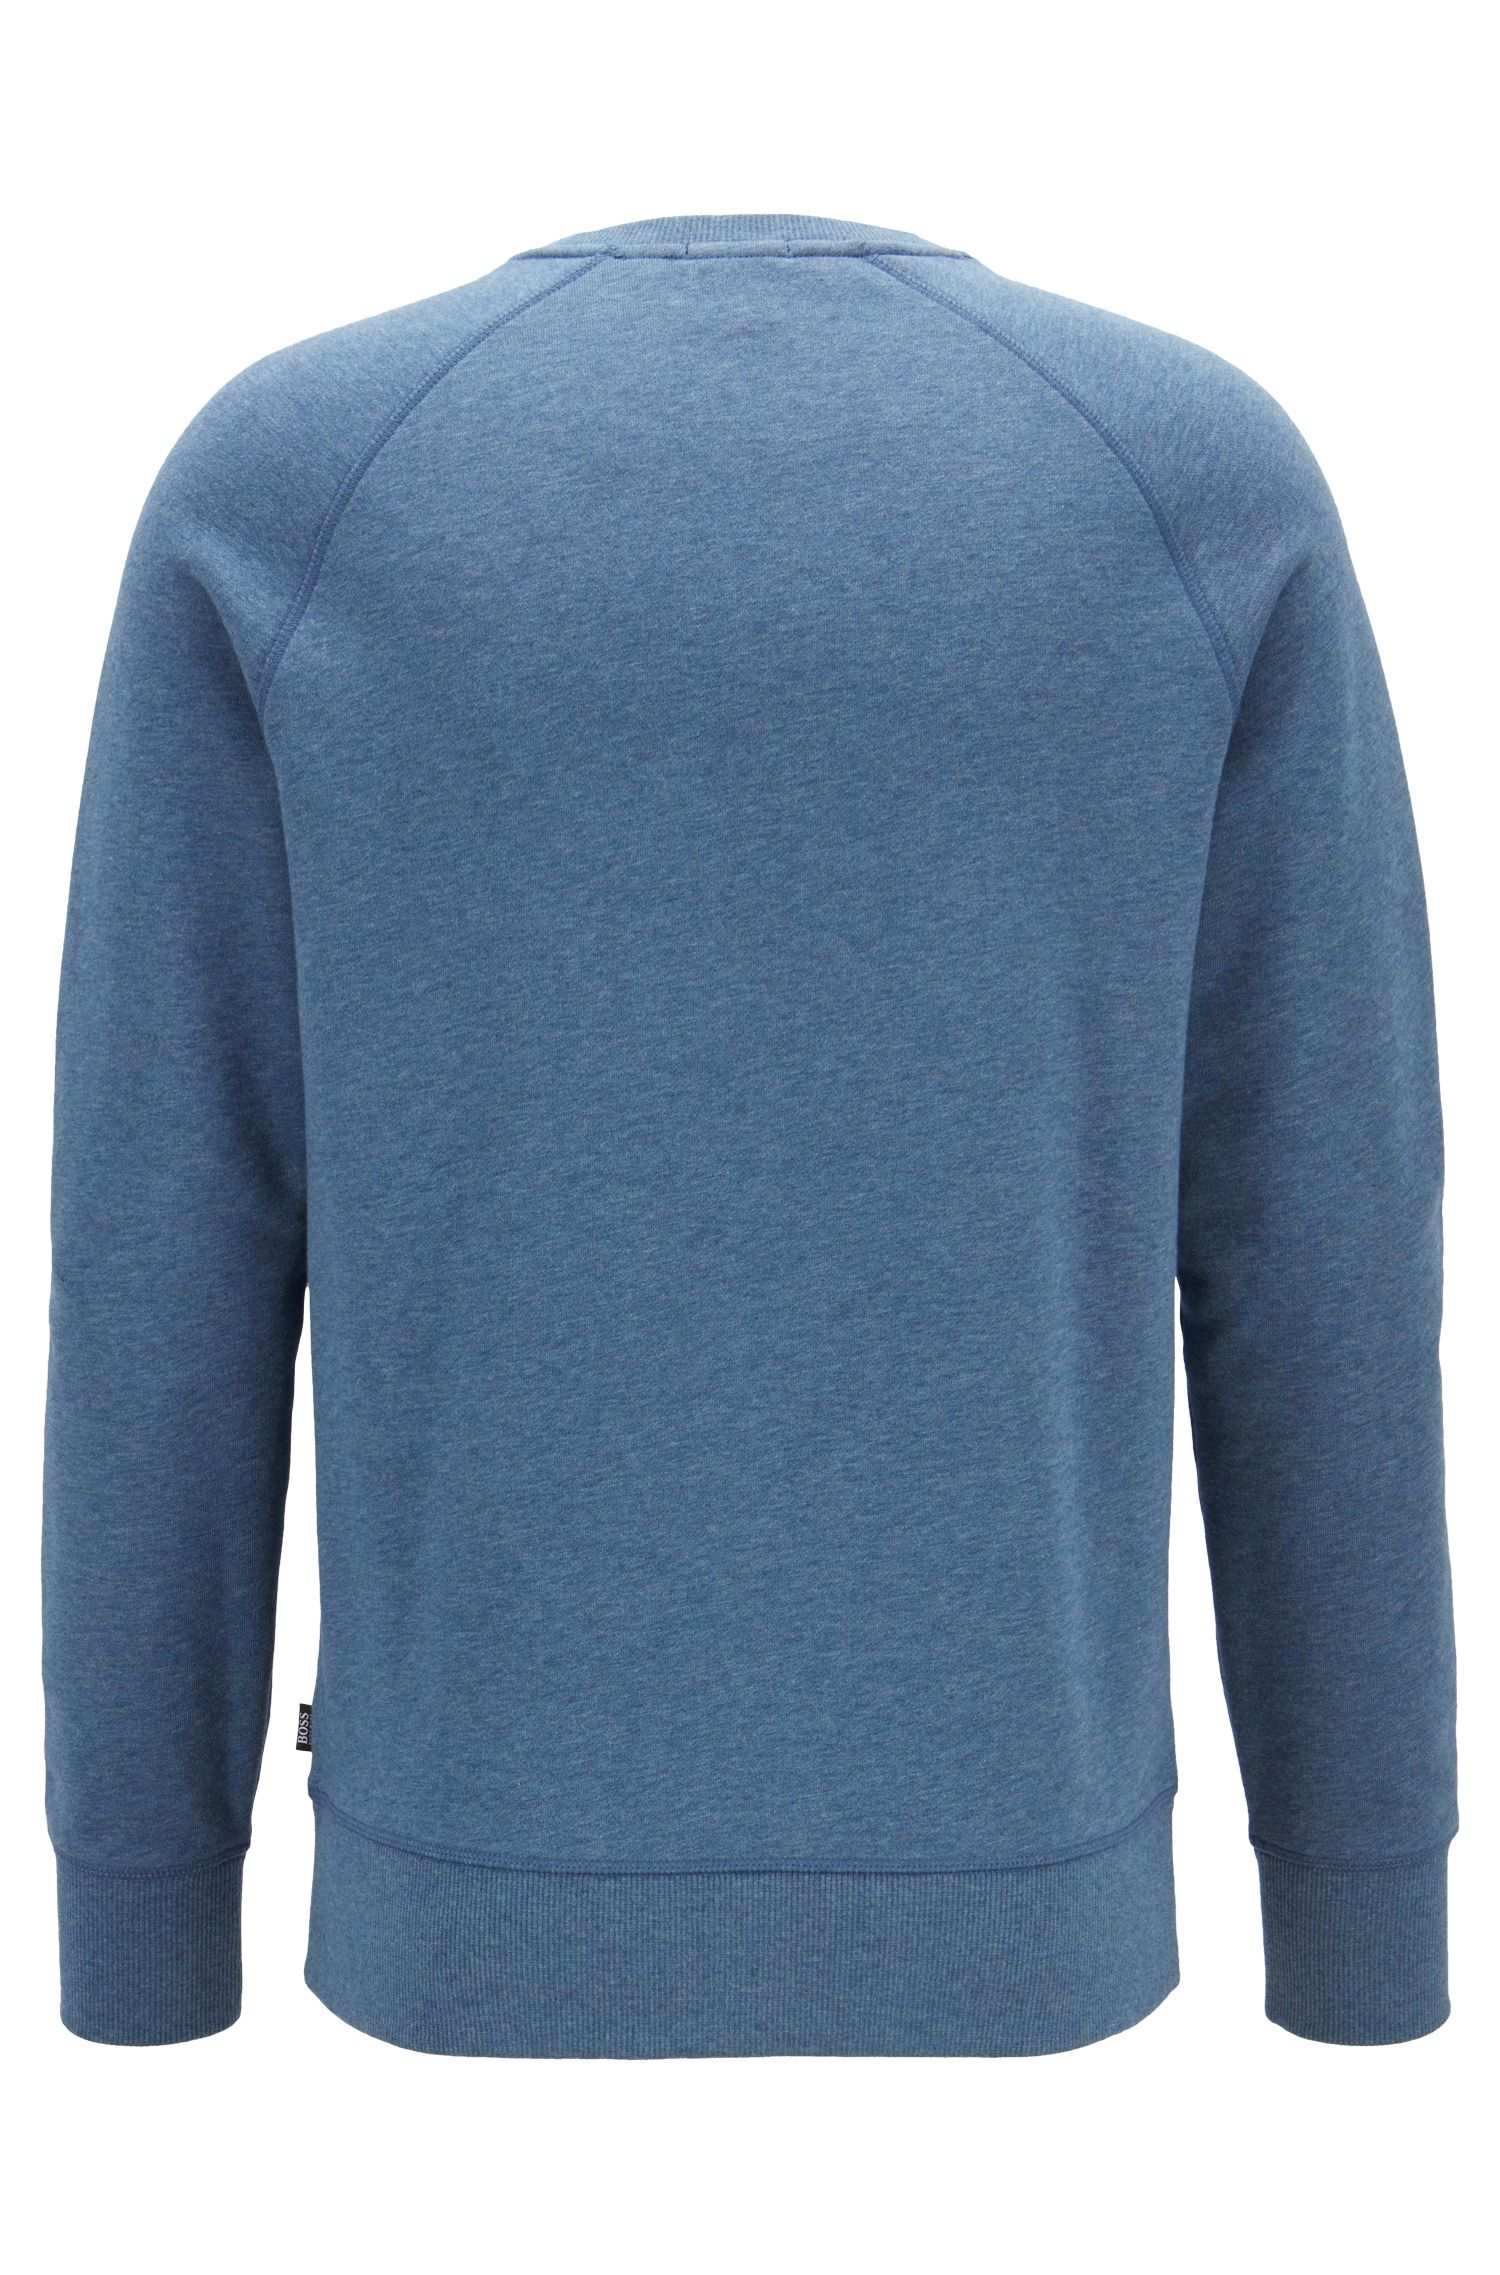 Slim-fit sweatshirt in French terry with stitch detailing, Open Blue